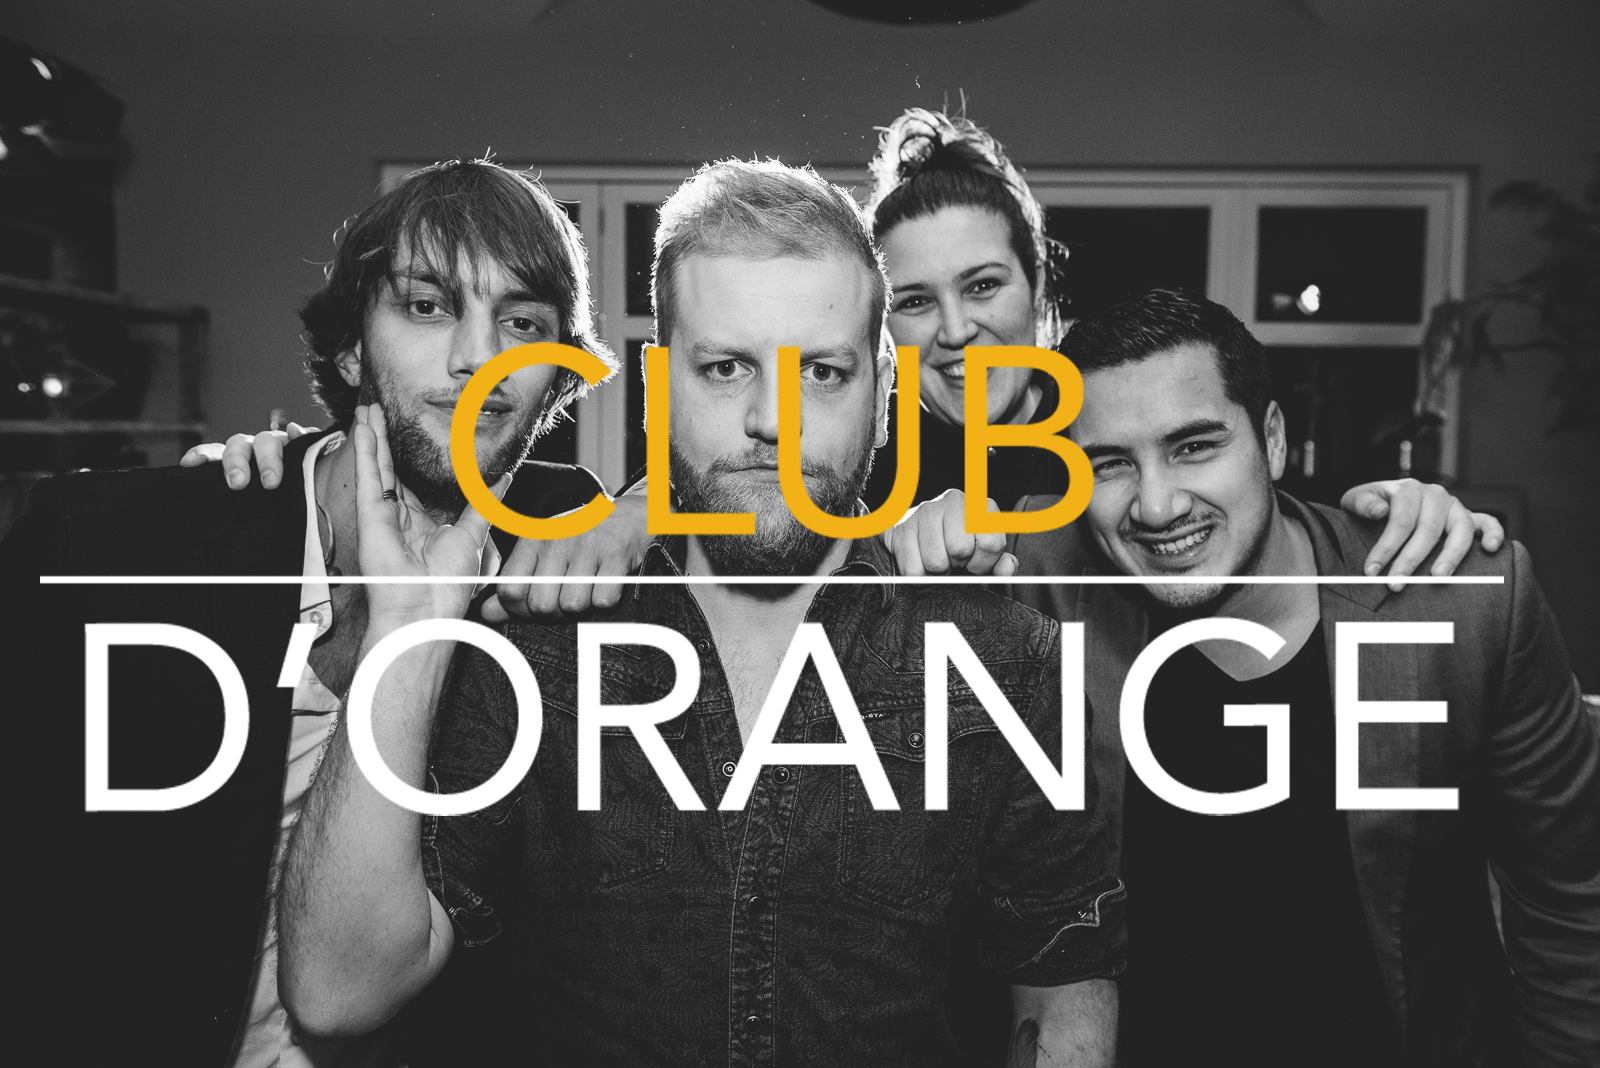 Club d'orange coverband